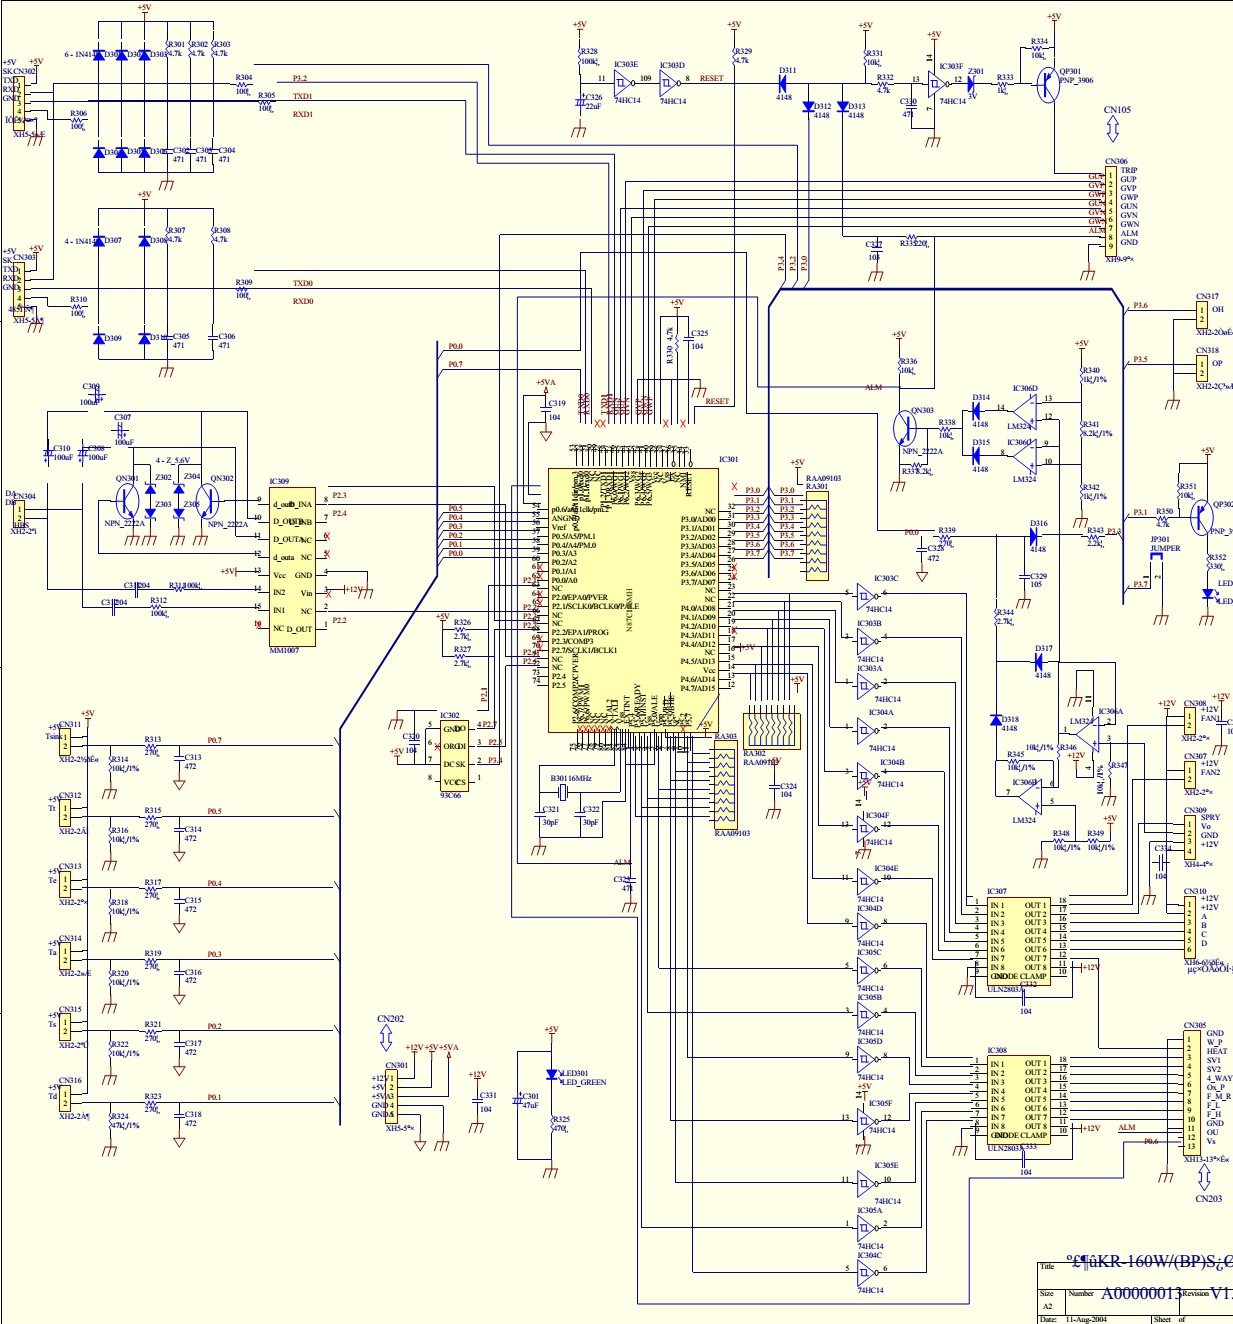 wiring-diagram-for-haier-air-conditioner-6  Haier Air Conditioner Wiring Diagram on